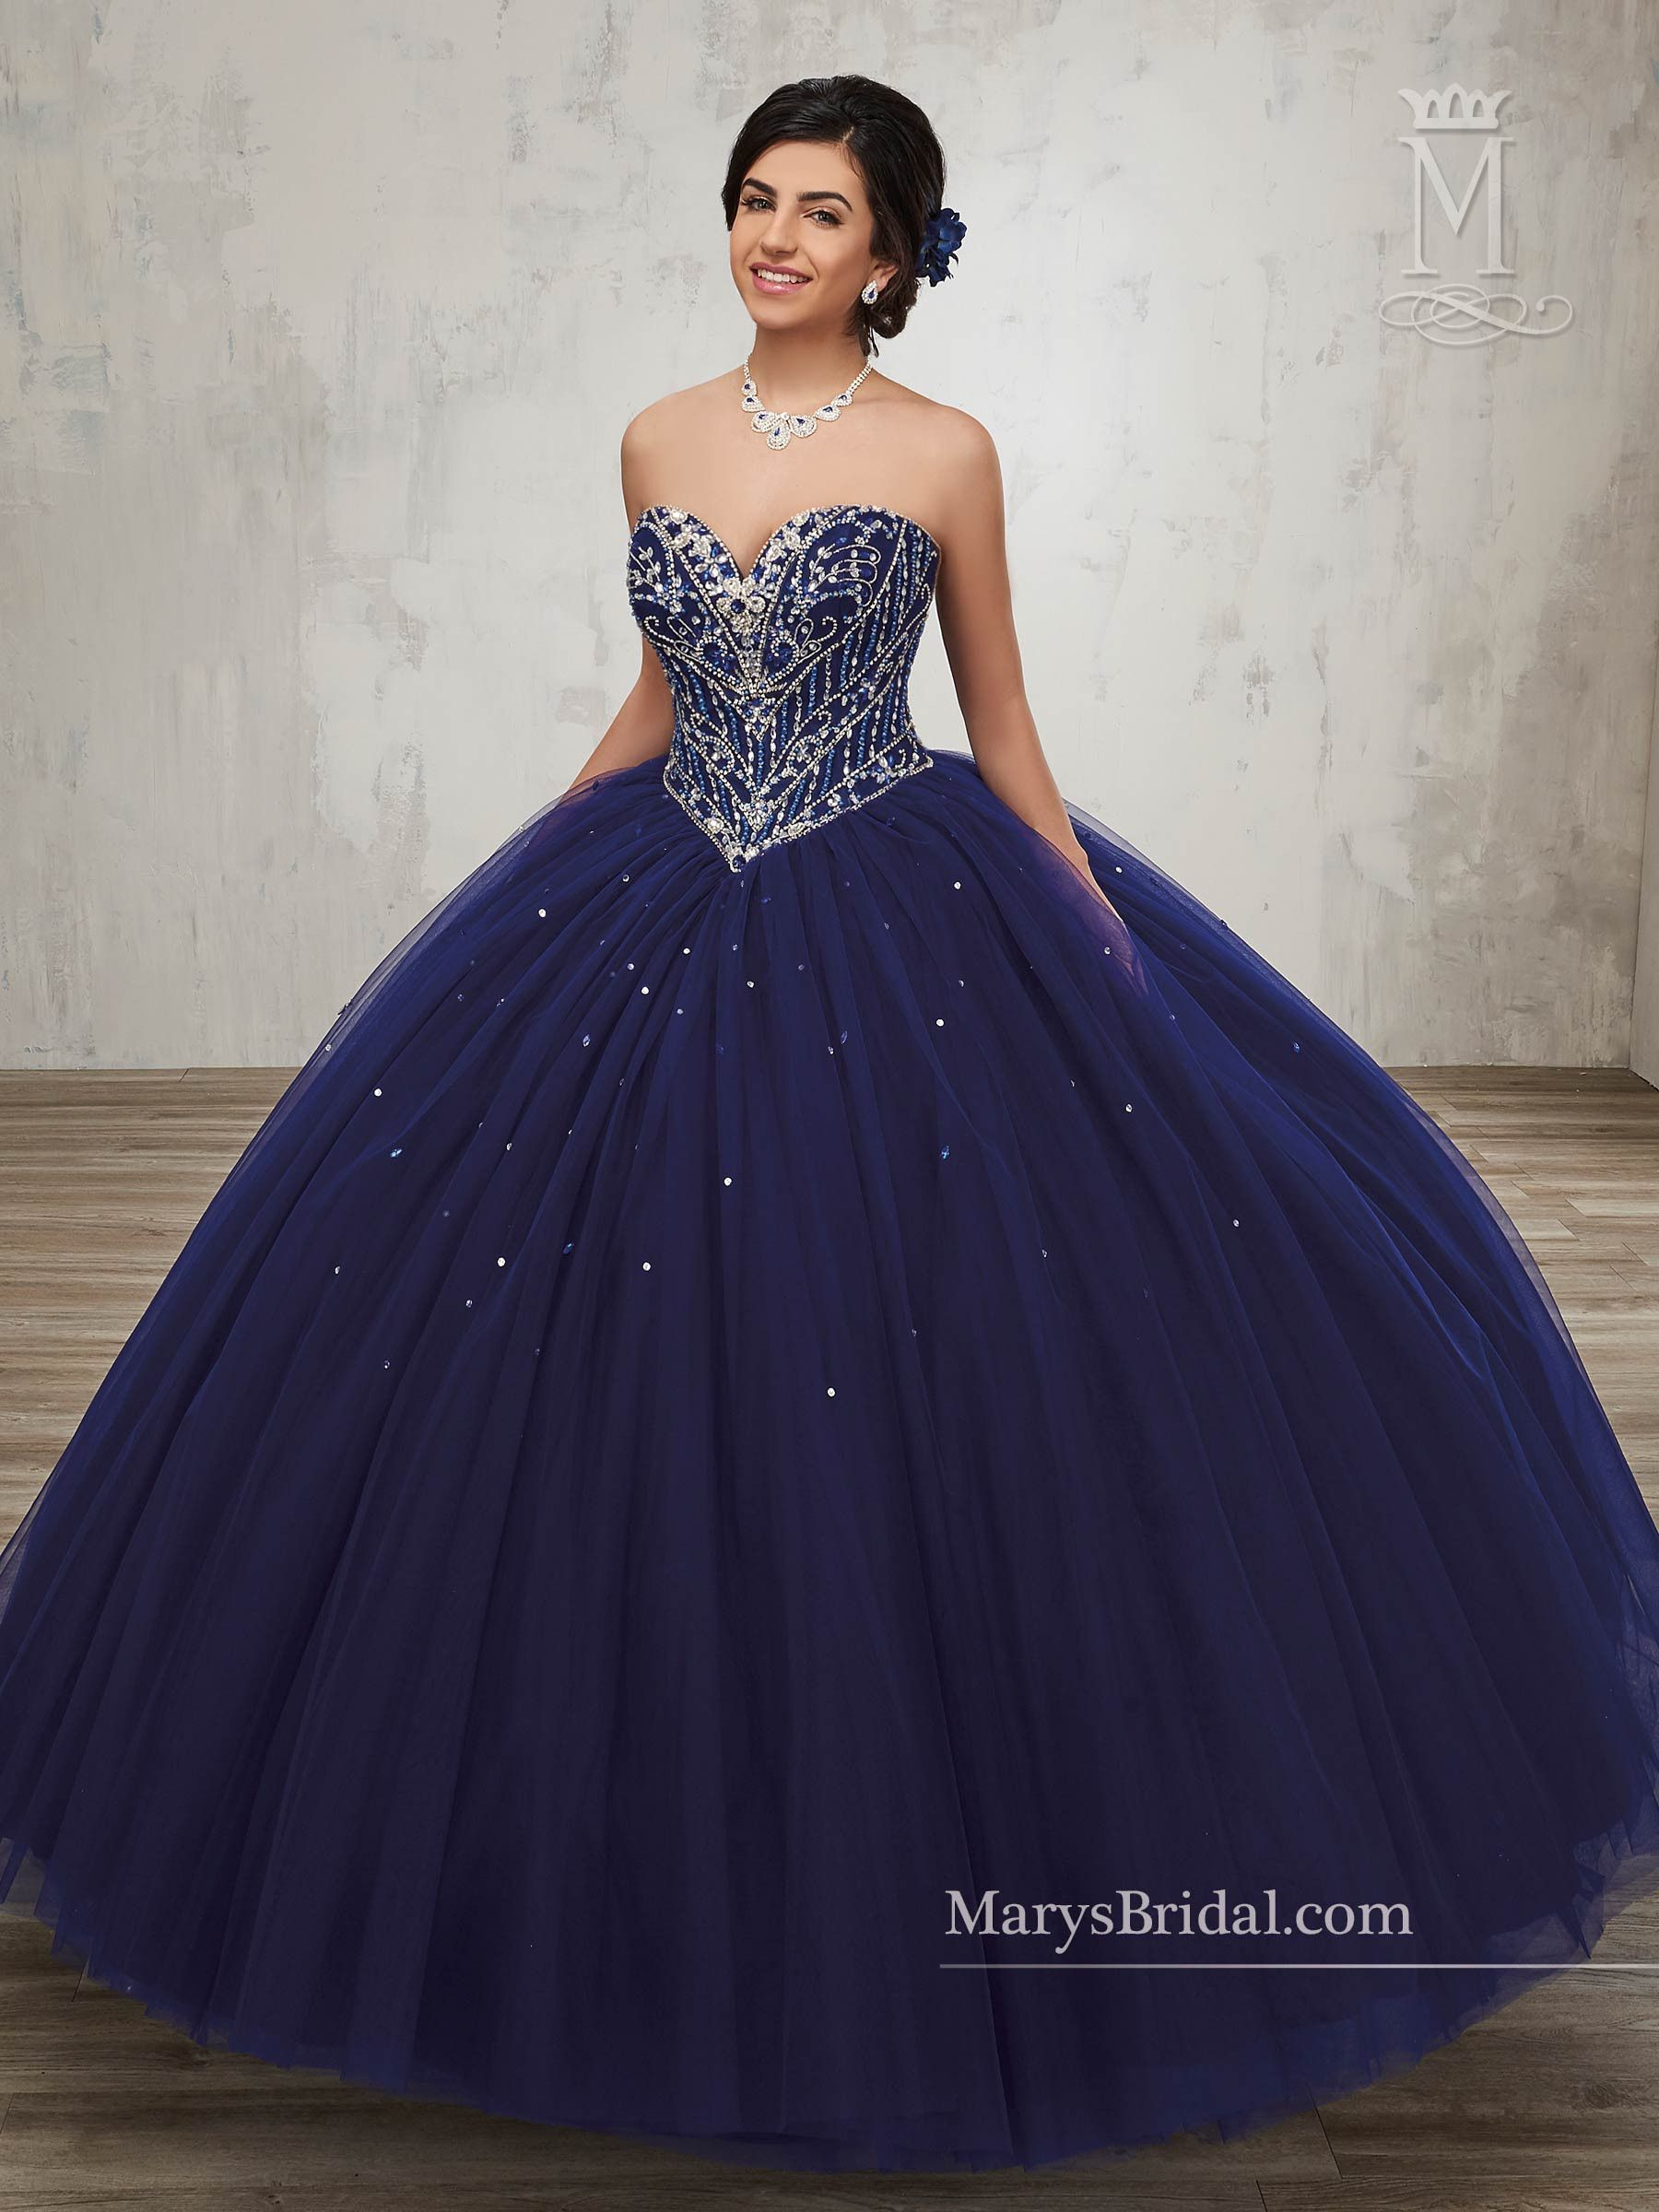 ee076e5fe7 Strapless A-line Quinceanera Dress by Mary s Bridal Beloving 4814   quinceaneradresses